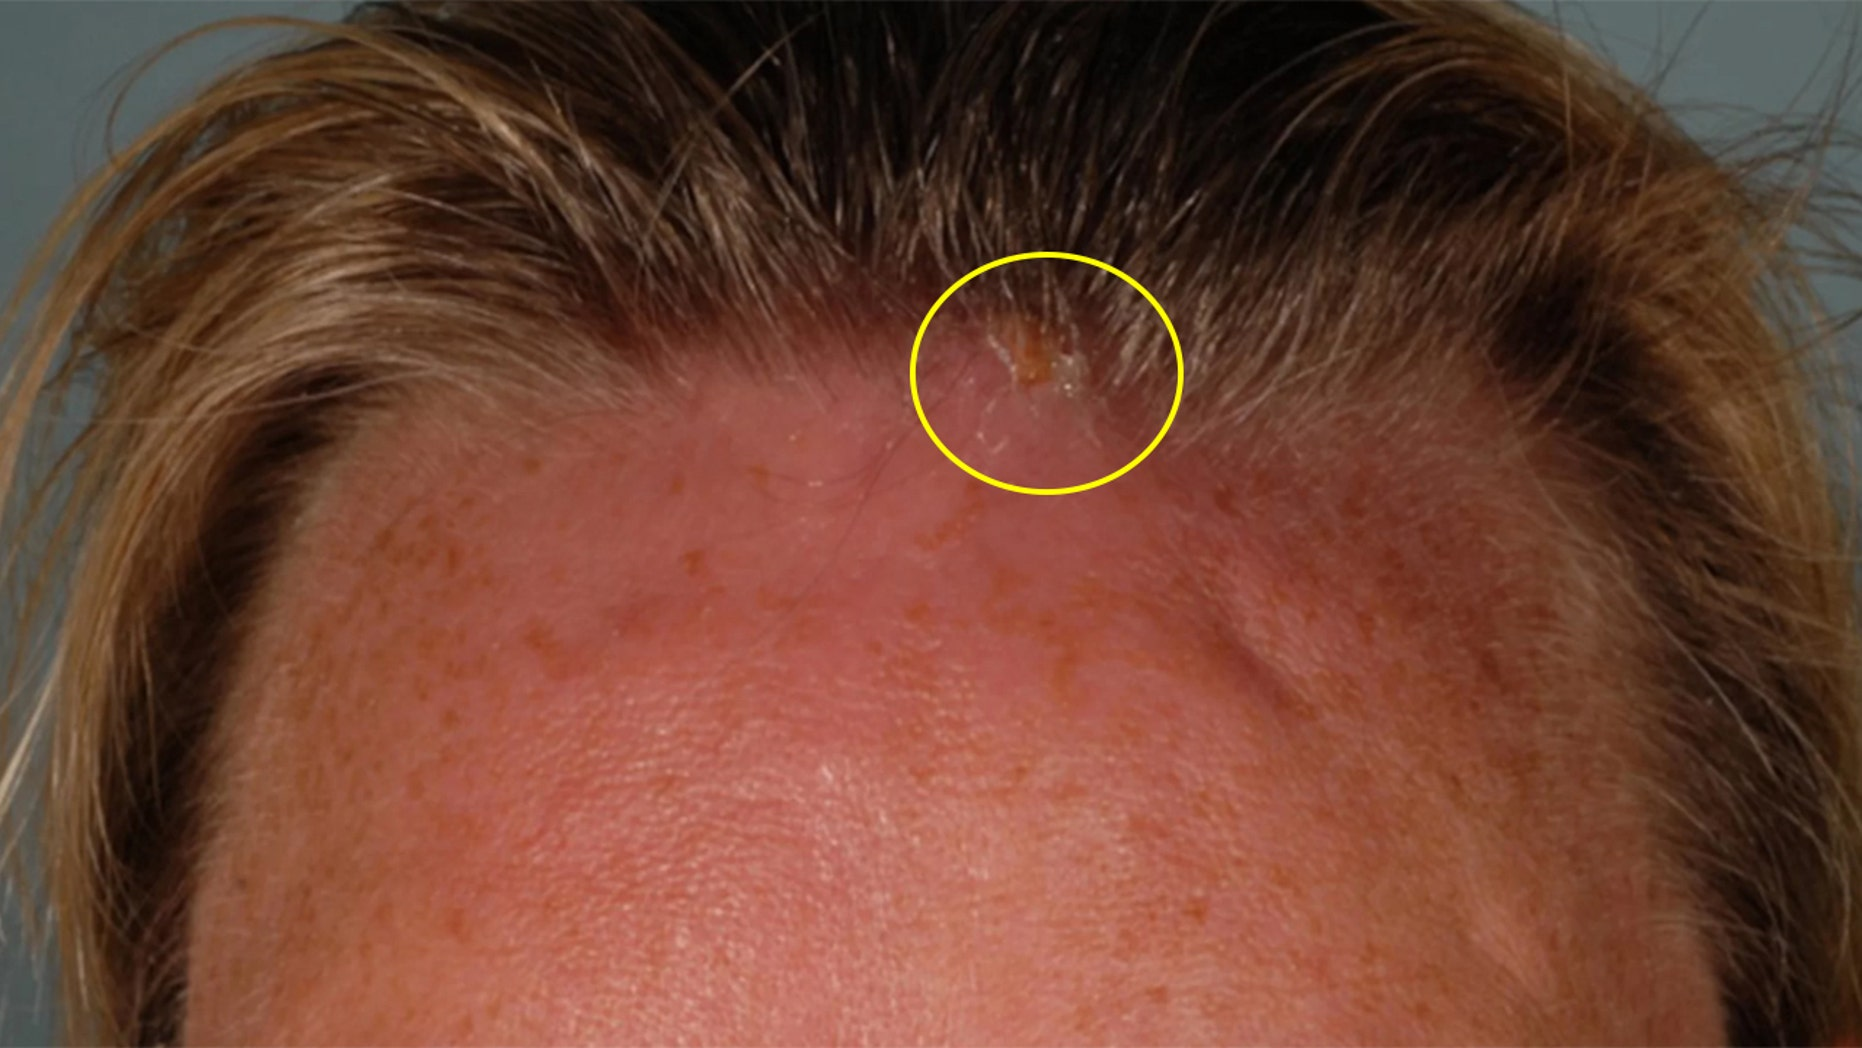 The woman was initially treated for an infected bug bite, but when she returned three days later, doctors discovered an opening near her hairline.